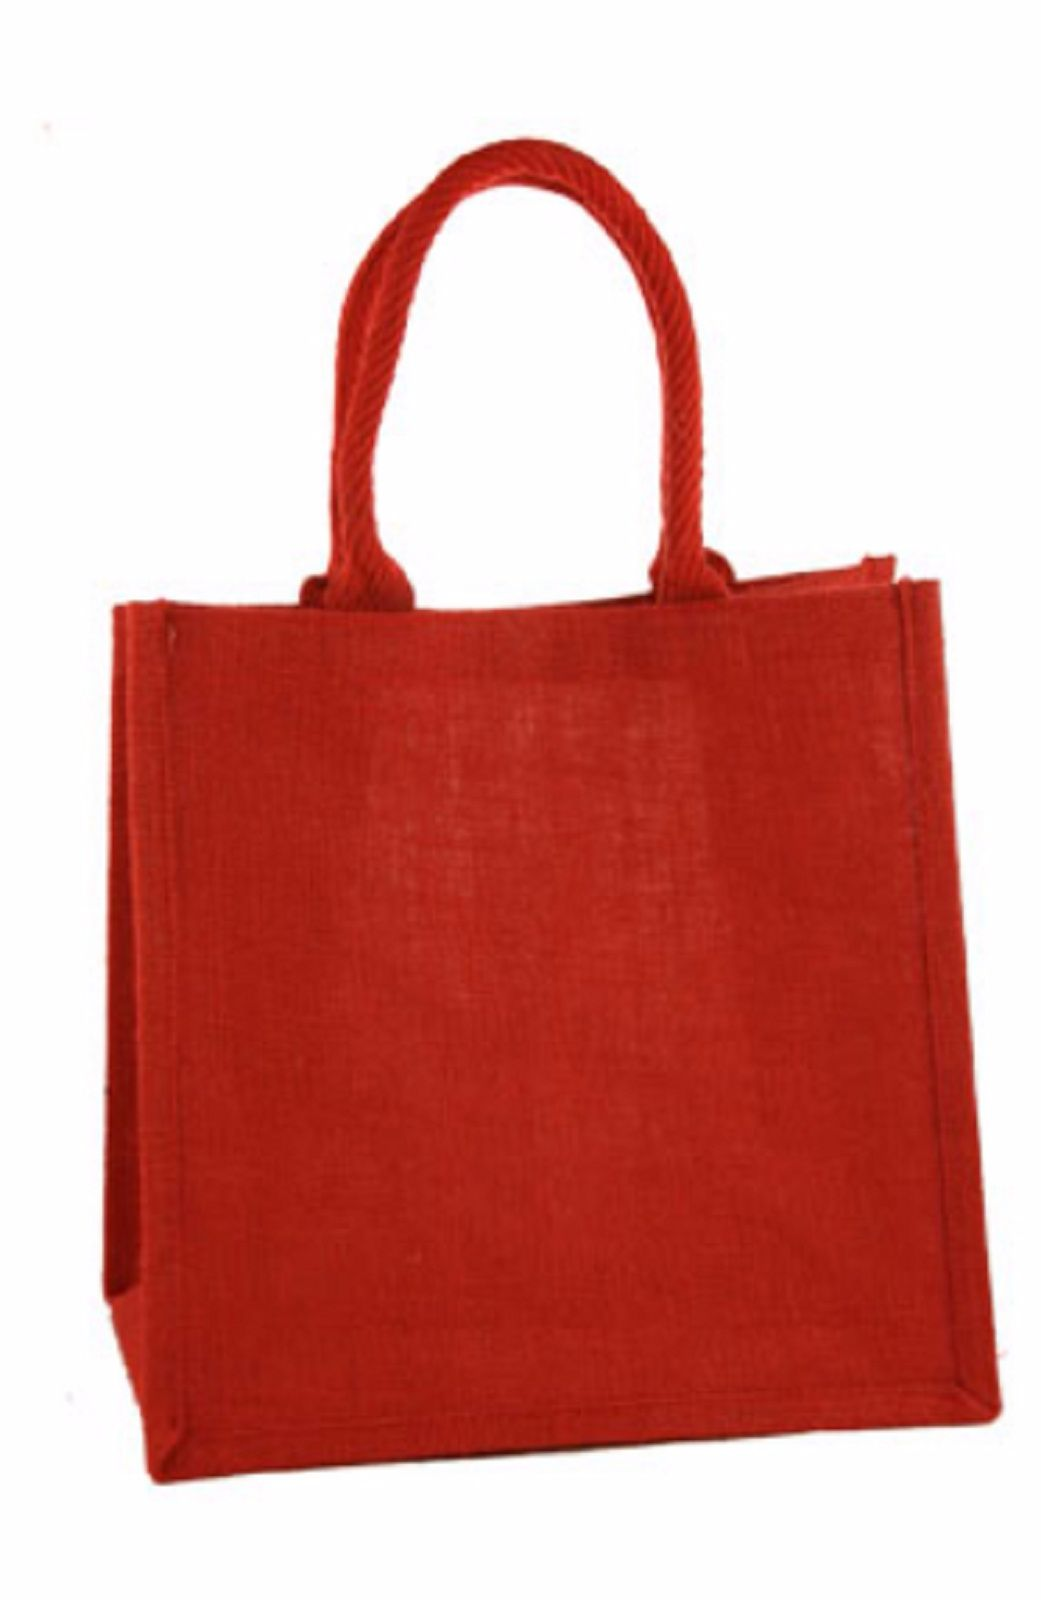 Medium Jute Shopping Bags - Various Colours - Seconds - £1.20